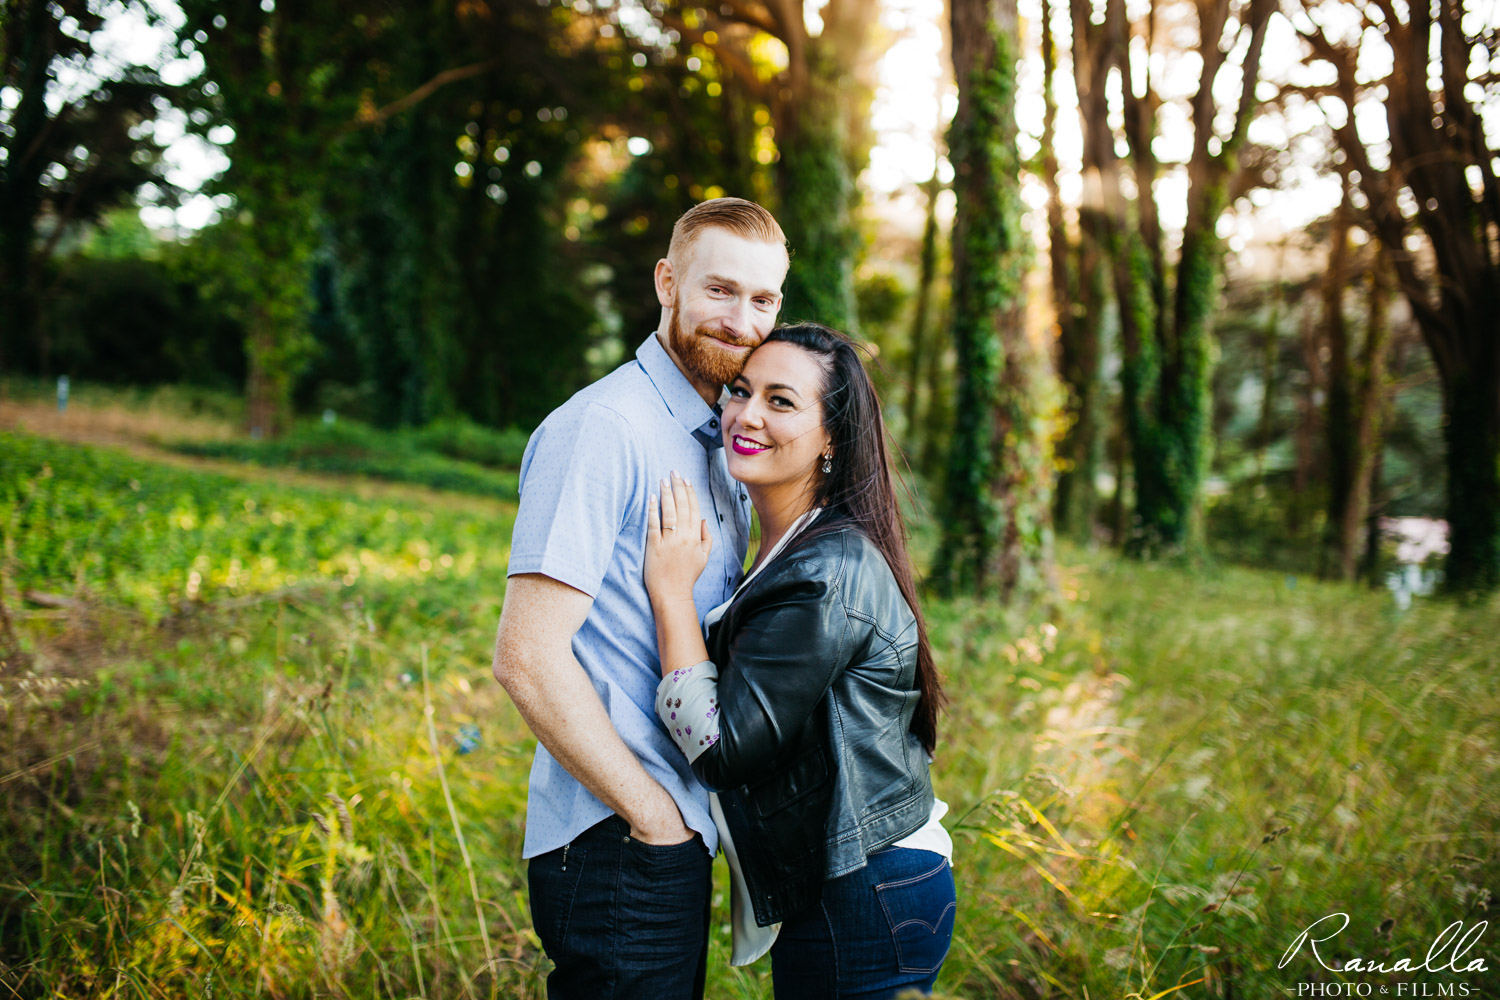 San Francisco Engagement Photos-Ranalla Photo & Films-Main Post